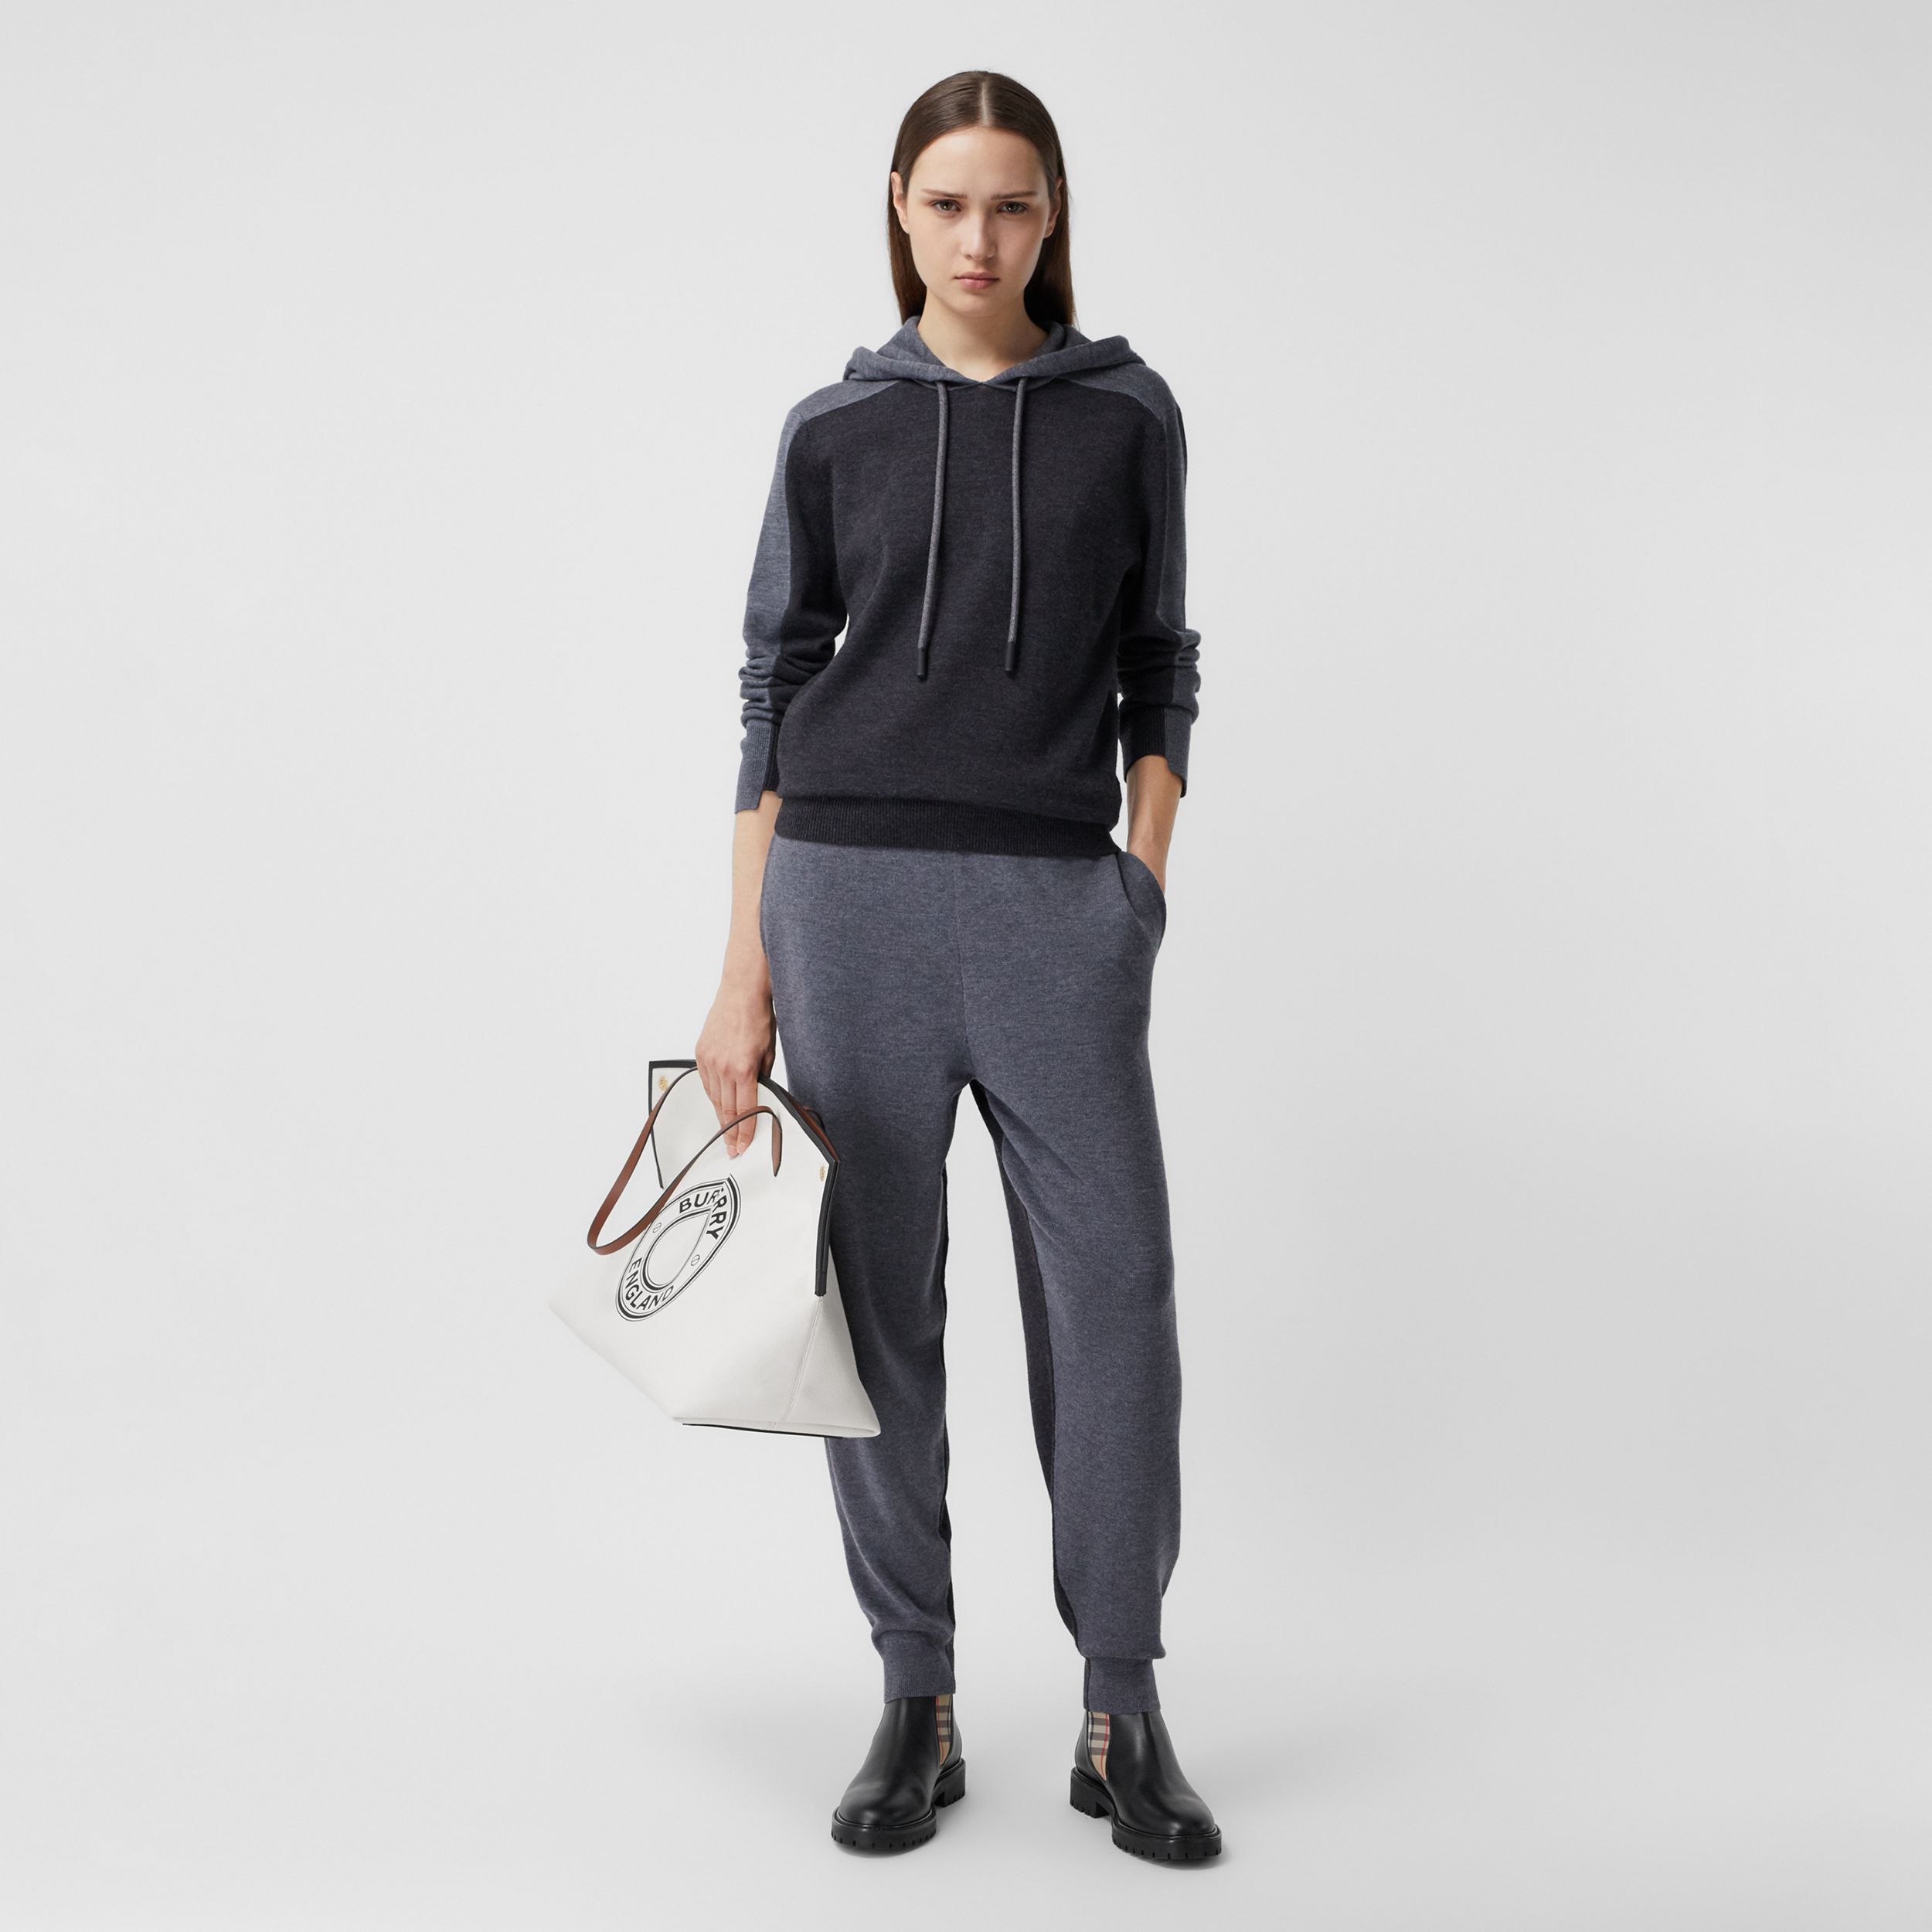 Two-tone Merino Wool Drawcord Jogging Pants in Charcoal Melange - Women | Burberry - 1